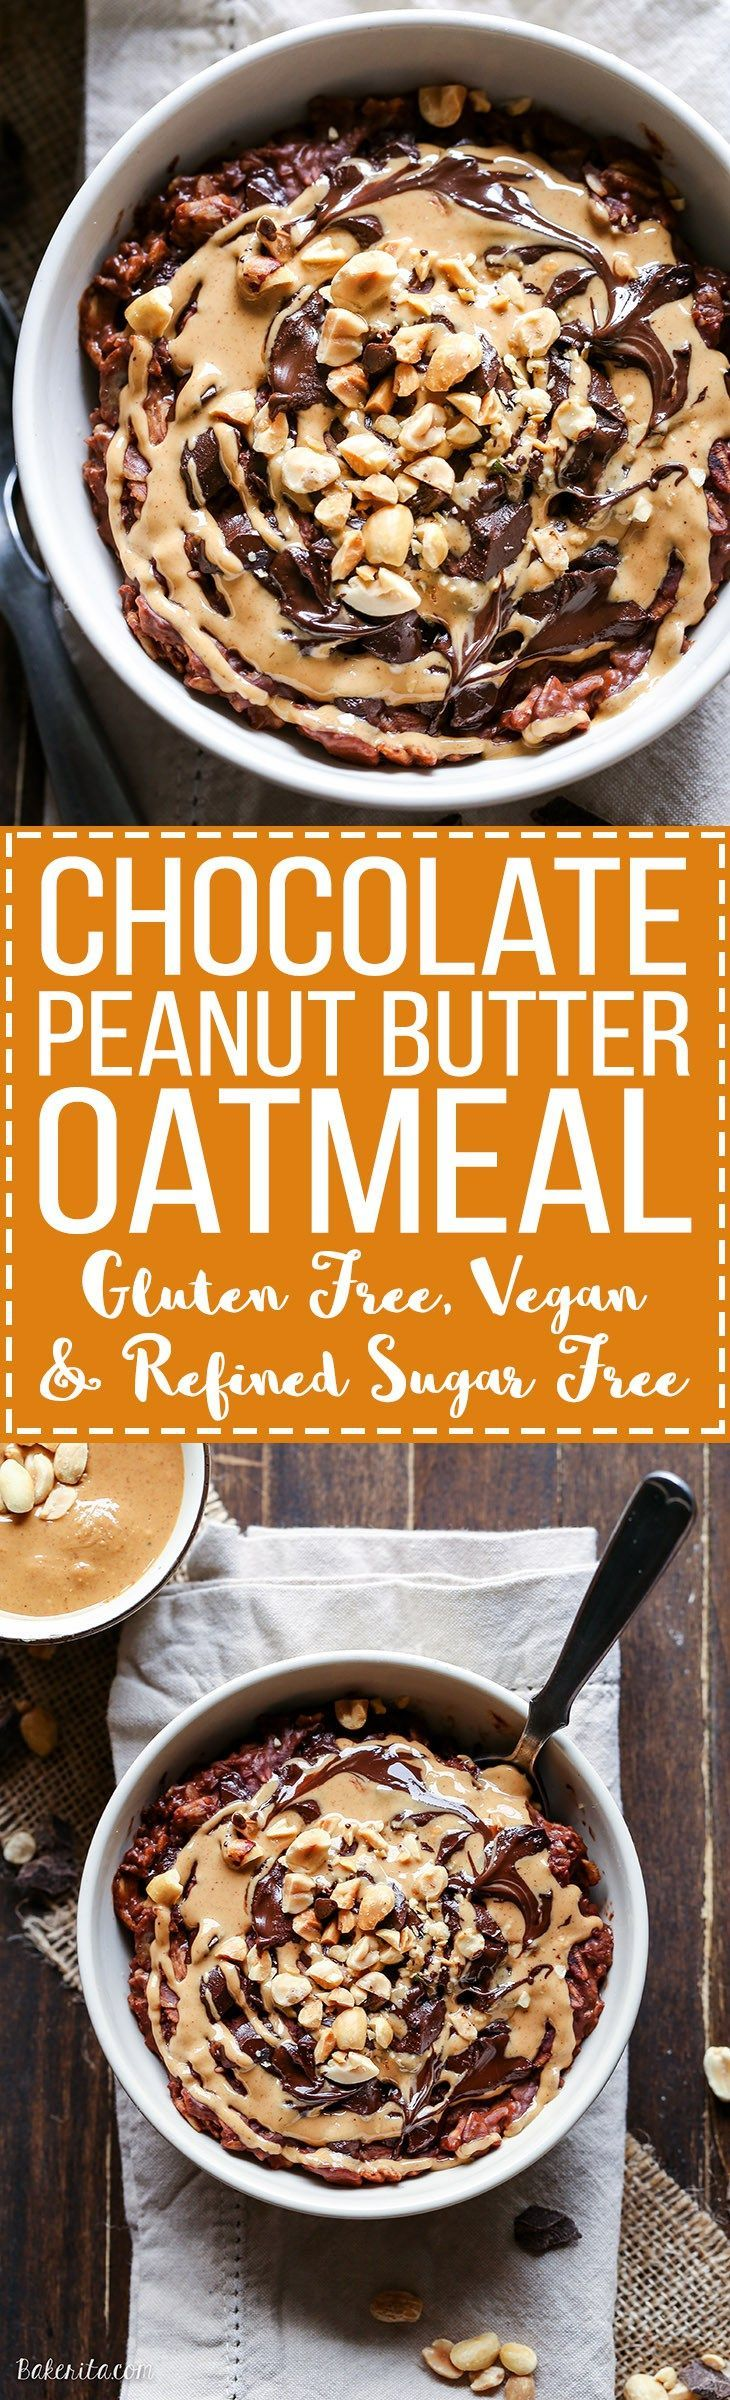 This Chocolate Peanut Butter Oatmeal tastes like a peanut butter cup, but it's sweetened with just a ripe banana! You'll love to wake up to this gluten-free, refined sugar-free + vegan breakfast. Chocolate Peanut Butter Oatmeal tastes like a peanut butter cup, but it's sweetened with just a ripe banana! You'll love to wake up to this gluten-free, refined sugar-free + vegan breakfast.